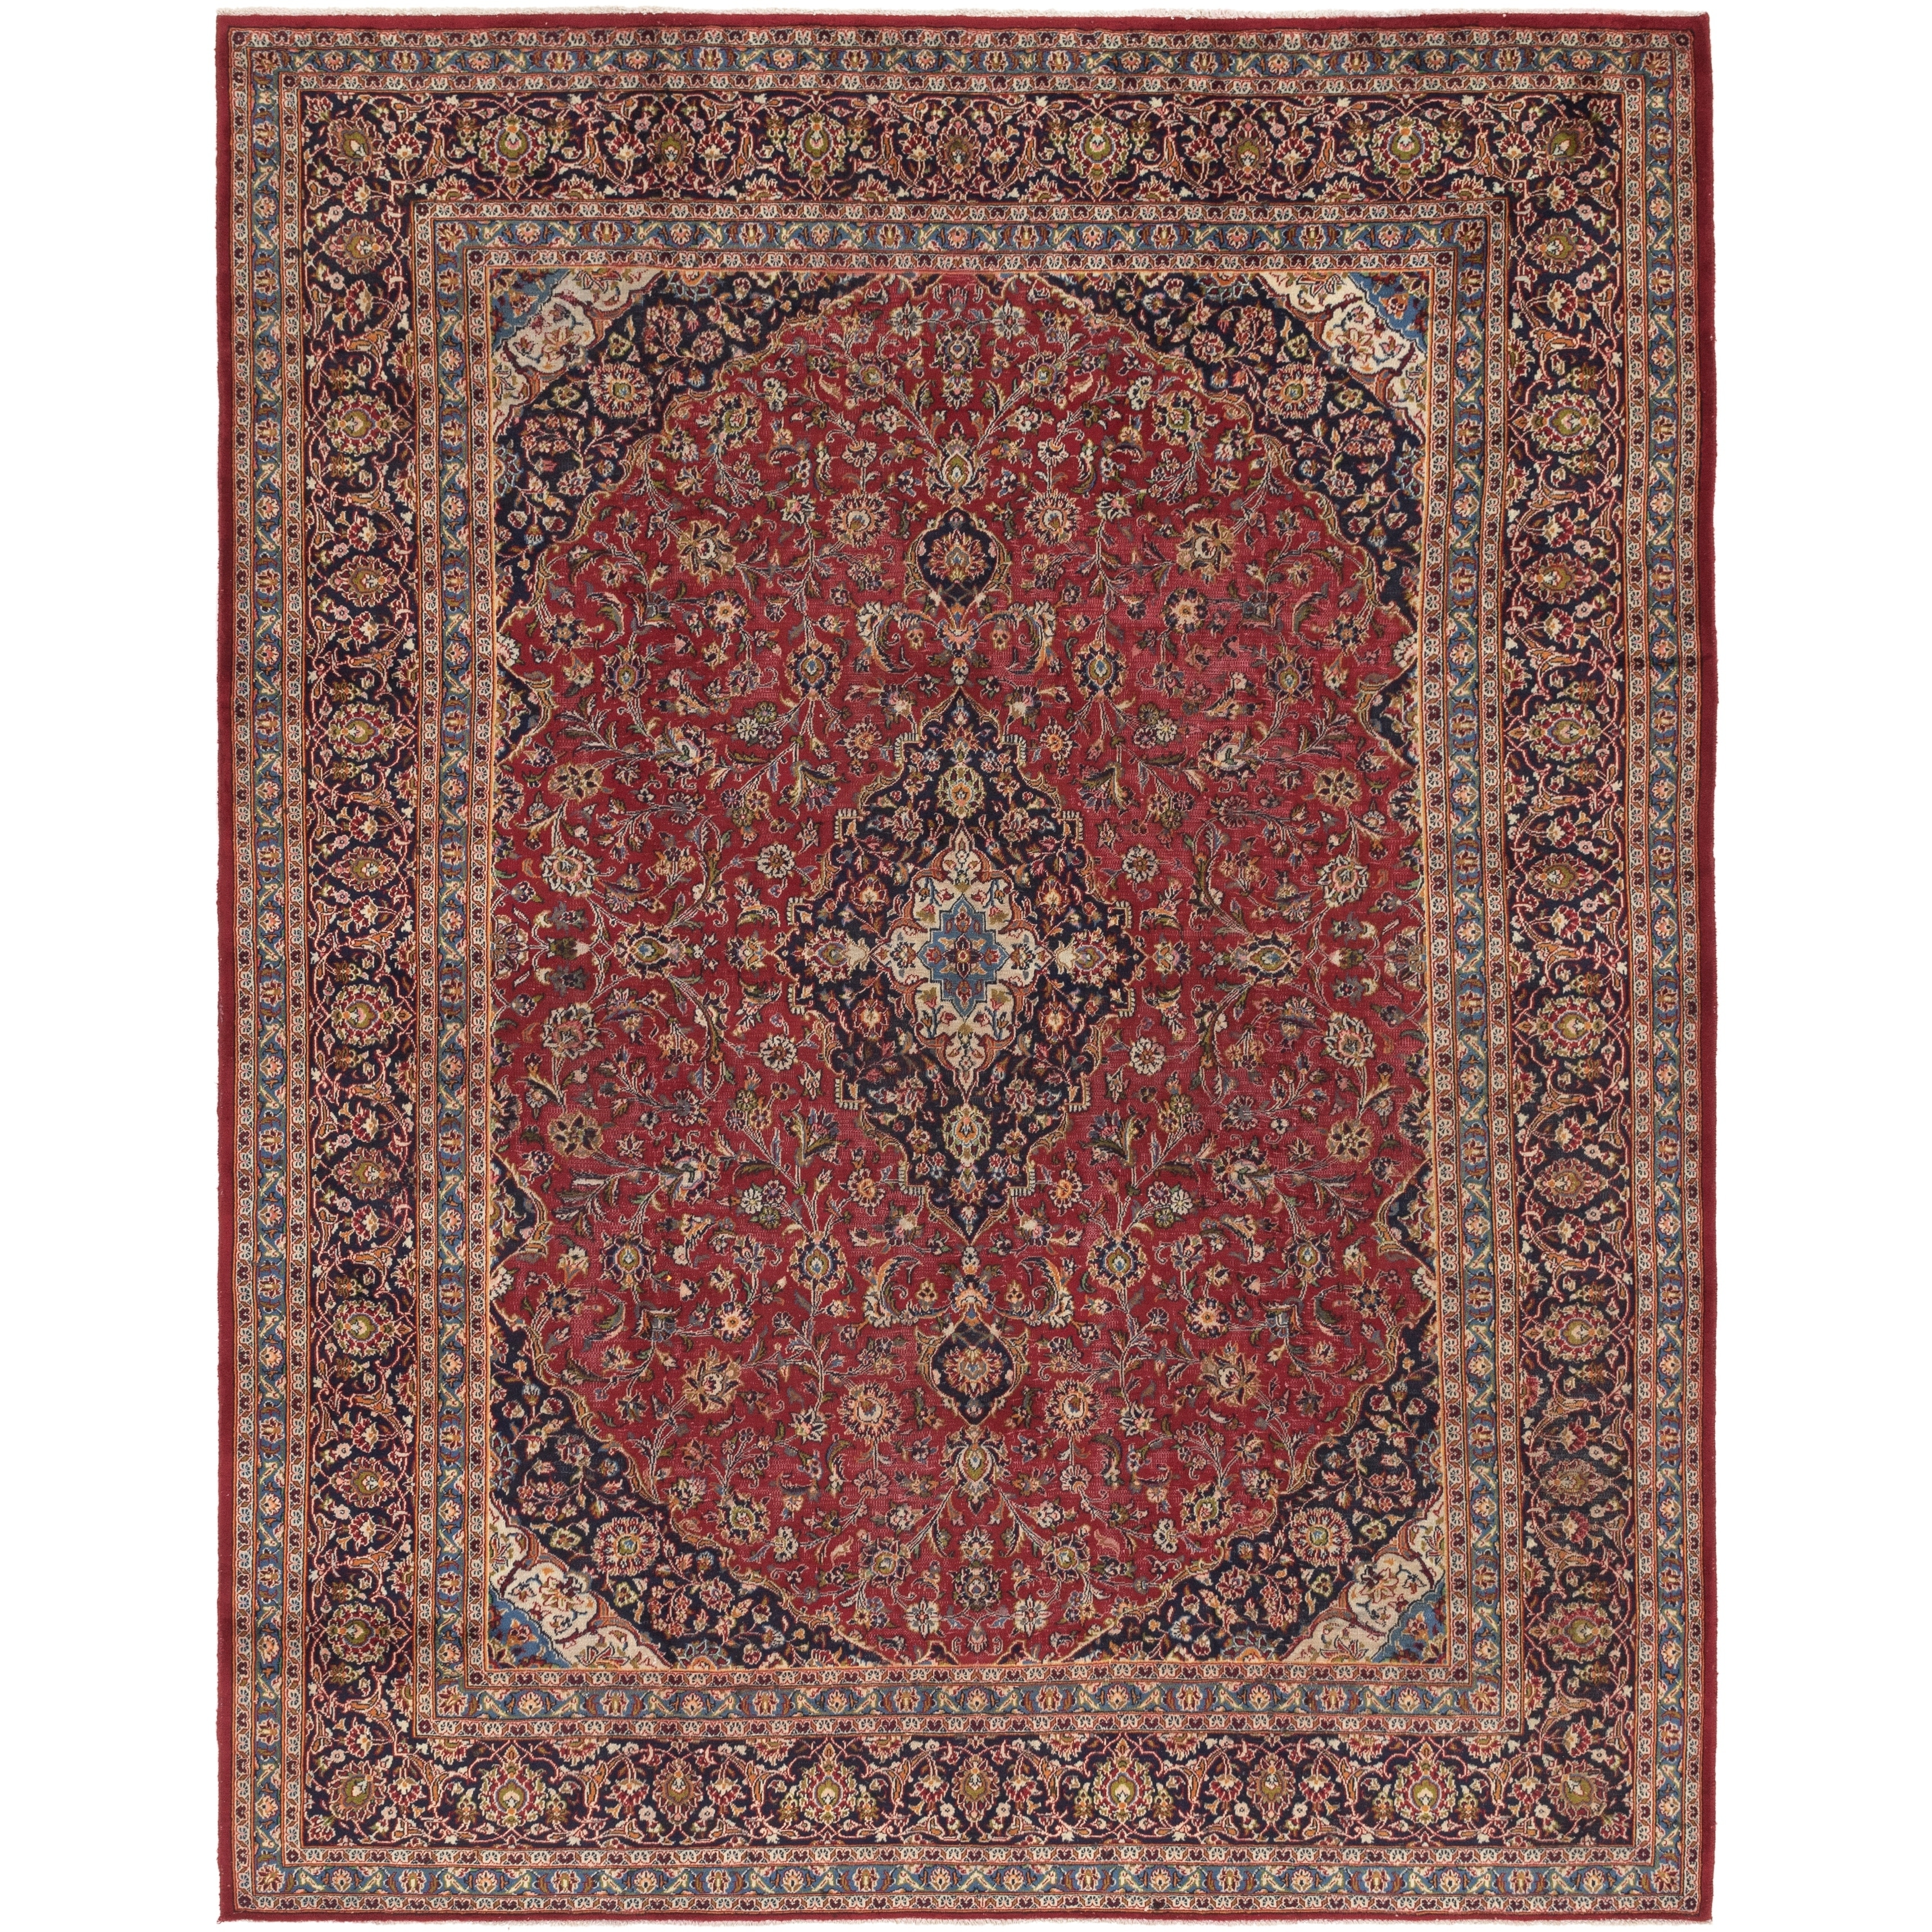 Hand Knotted Kashan Semi Antique Wool Area Rug - 9 6 x 12 9 (Red - 9 6 x 12 9)